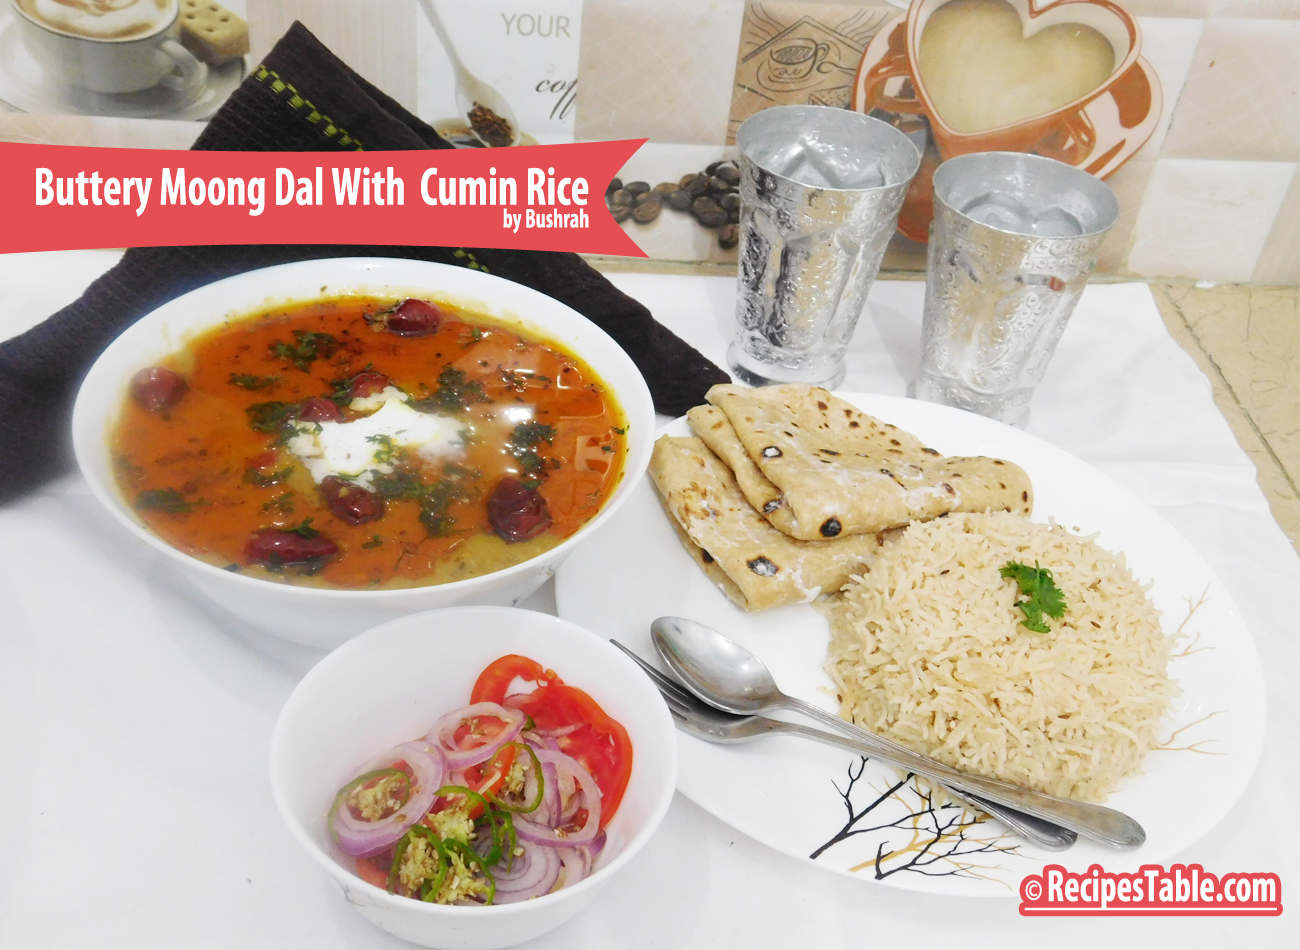 Buttery Moong Dal with Cumin Rice